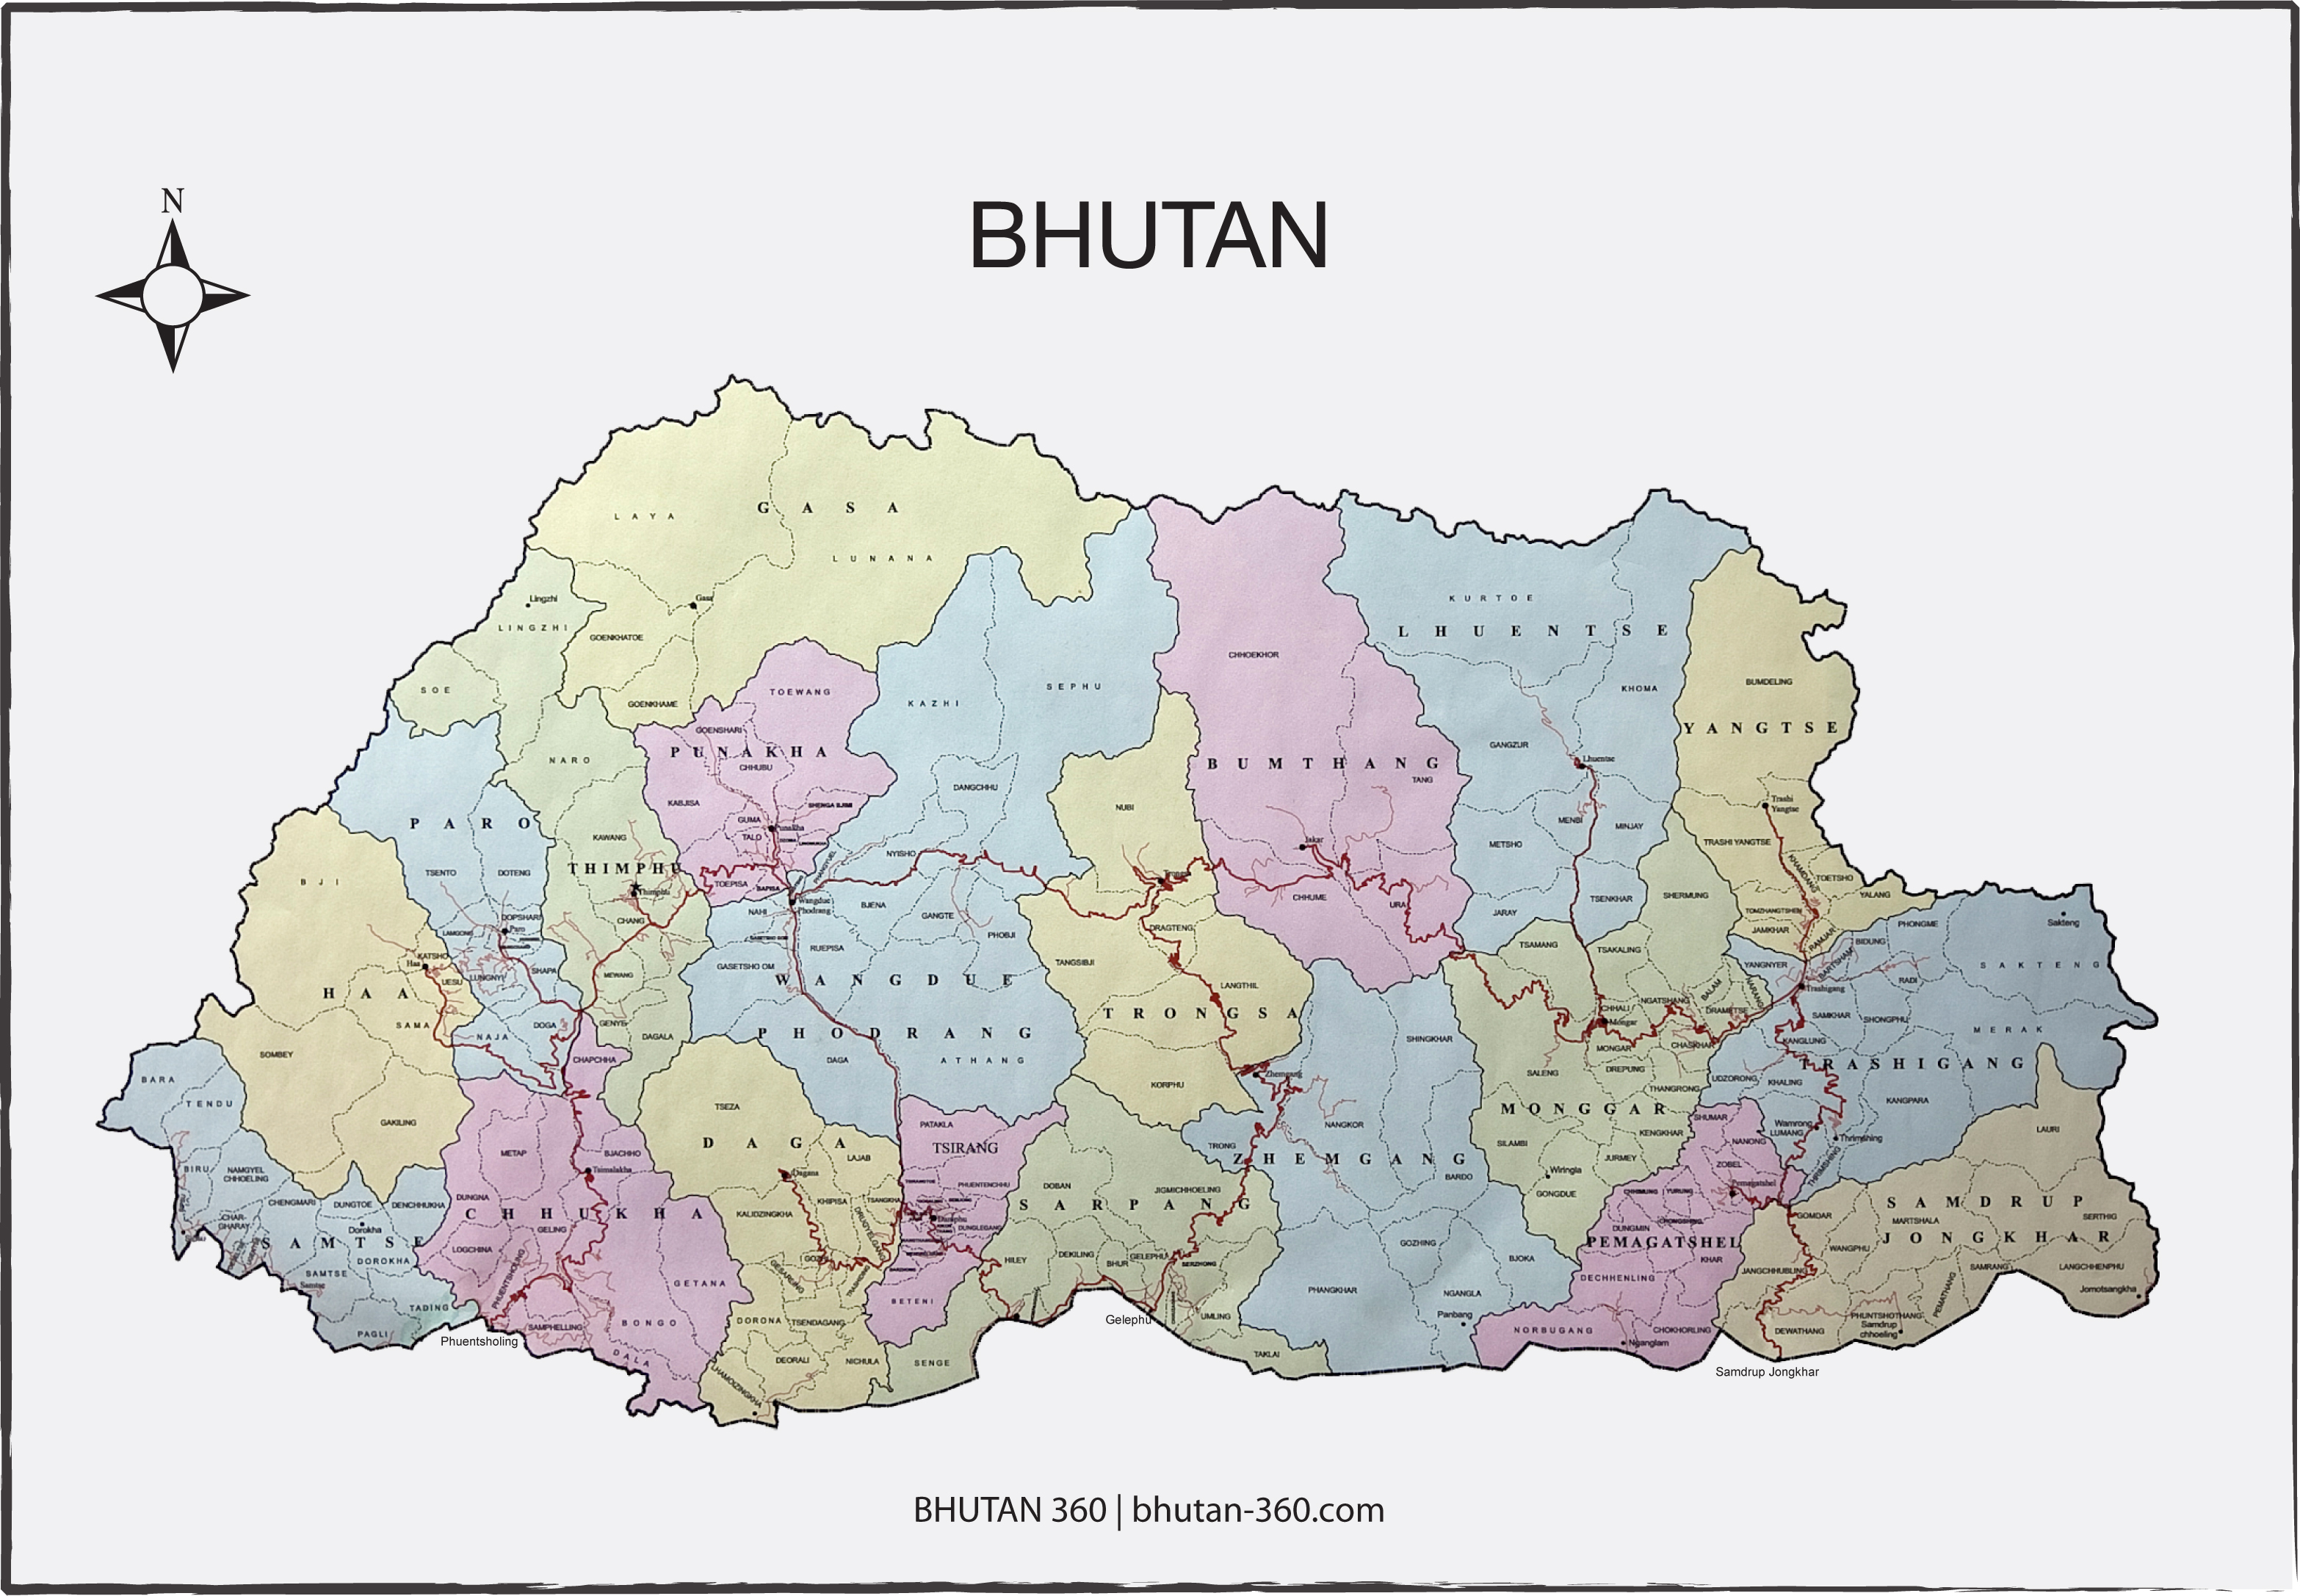 Bhutan Map - Free Download - Bhutan-360